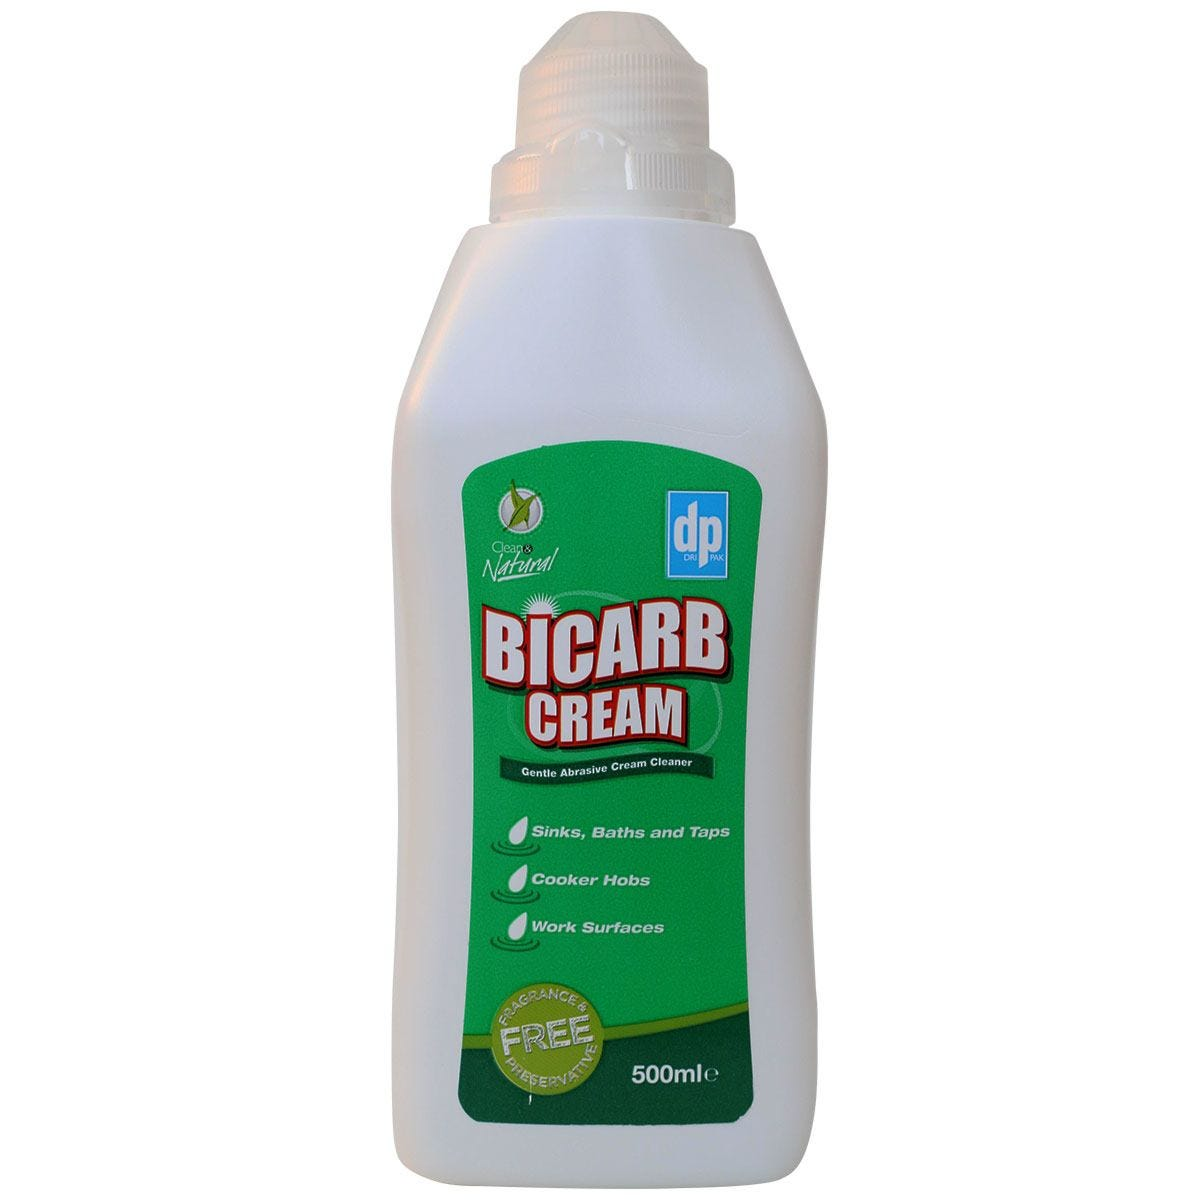 Dri-Pak Bicarb Cream Multi-surface Cleaner - 500ml